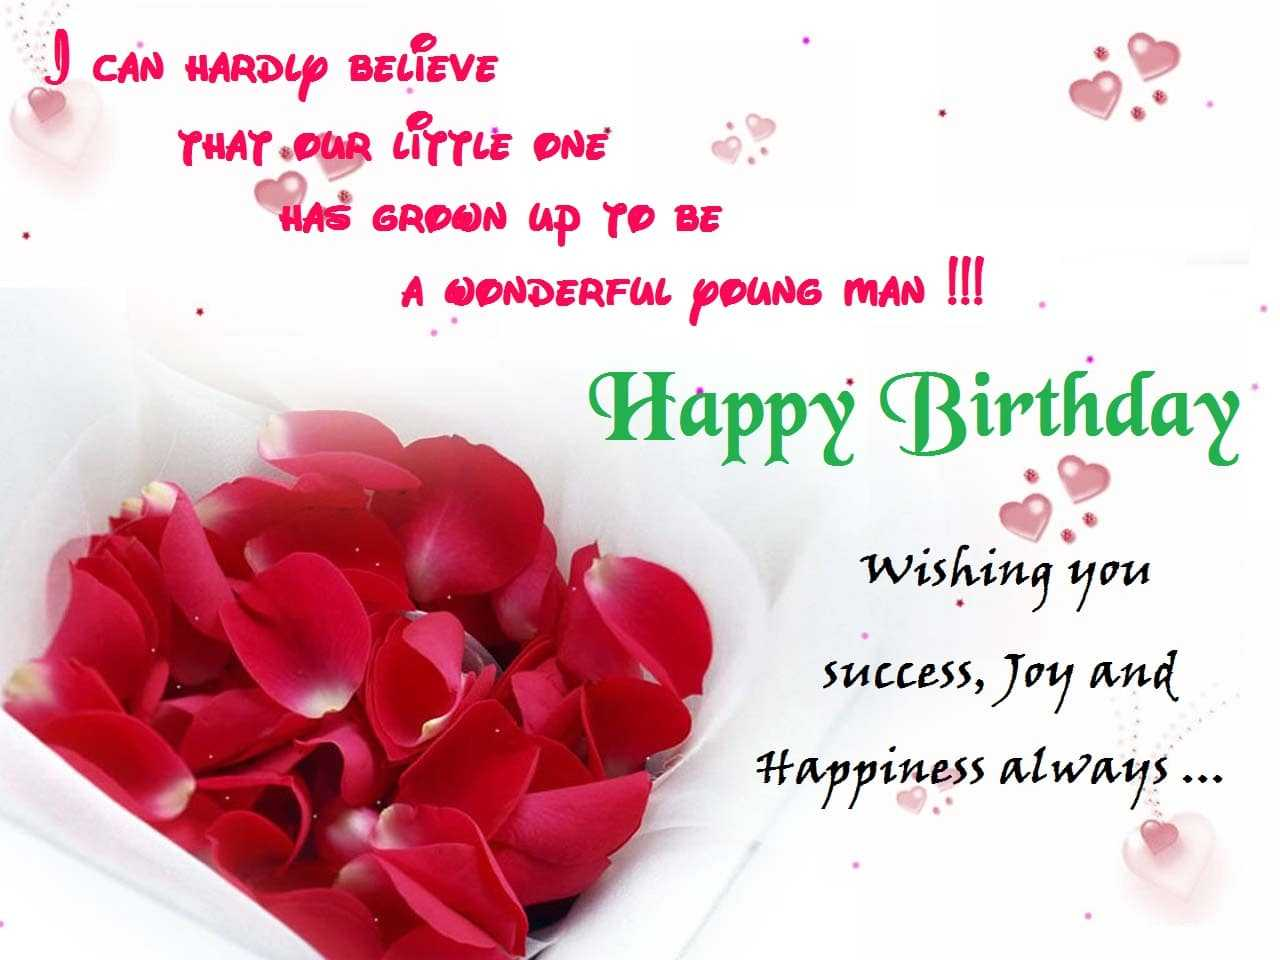 Happy Birthday Wishes For Husband Images Free Download I Can Hardly Believe That